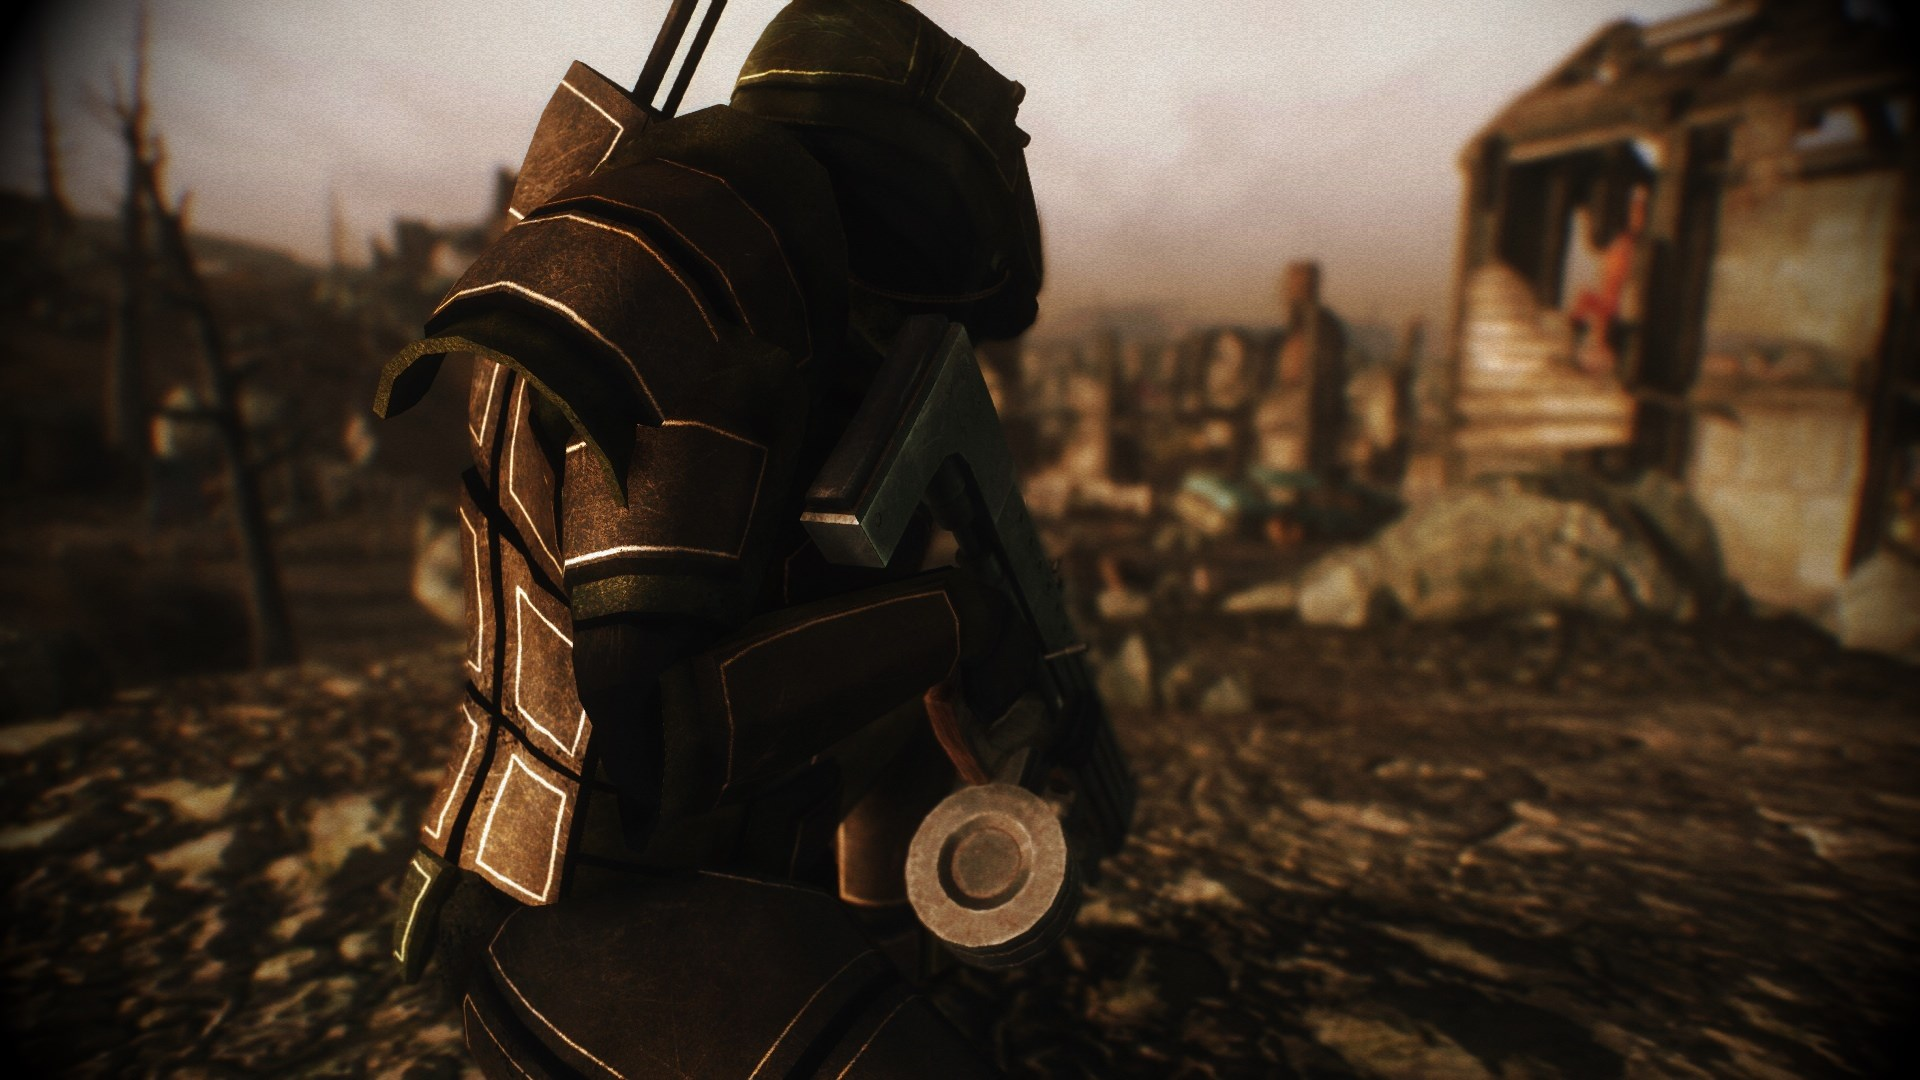 fallout new vegas wallpapers hd 39+ - page 2 of 3 - dzbc